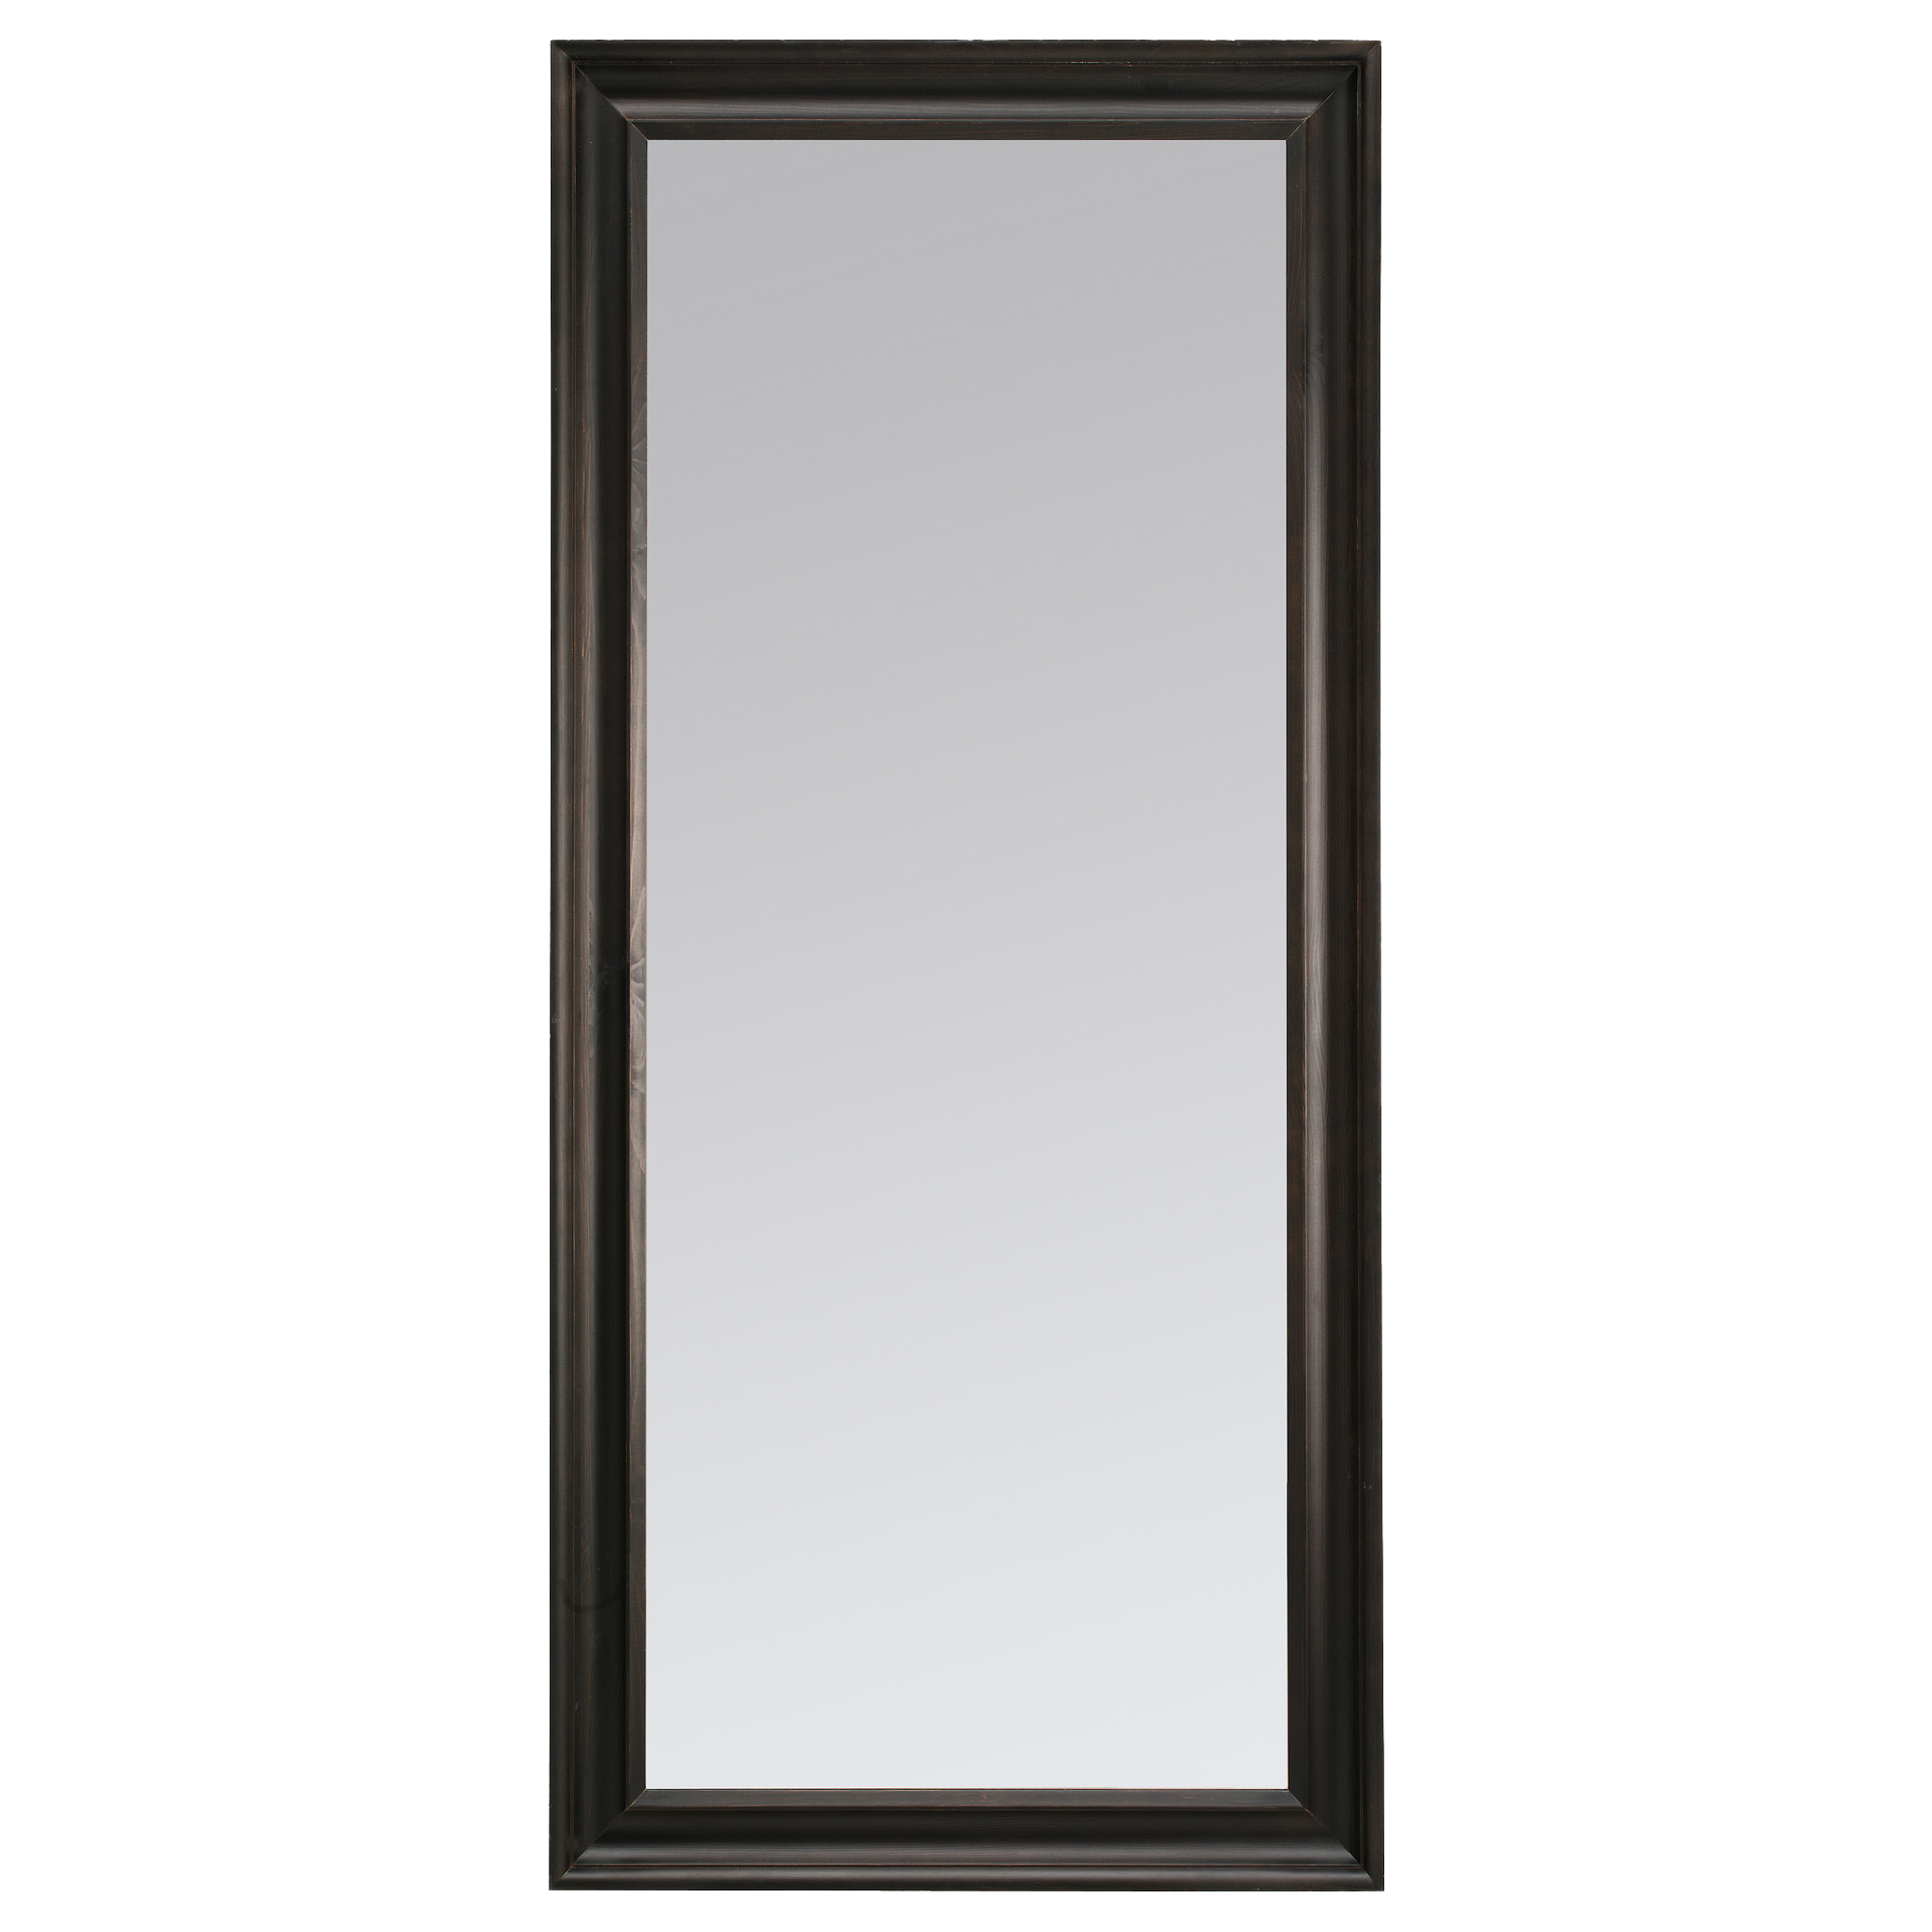 Mirror Transparent Background PNG Image